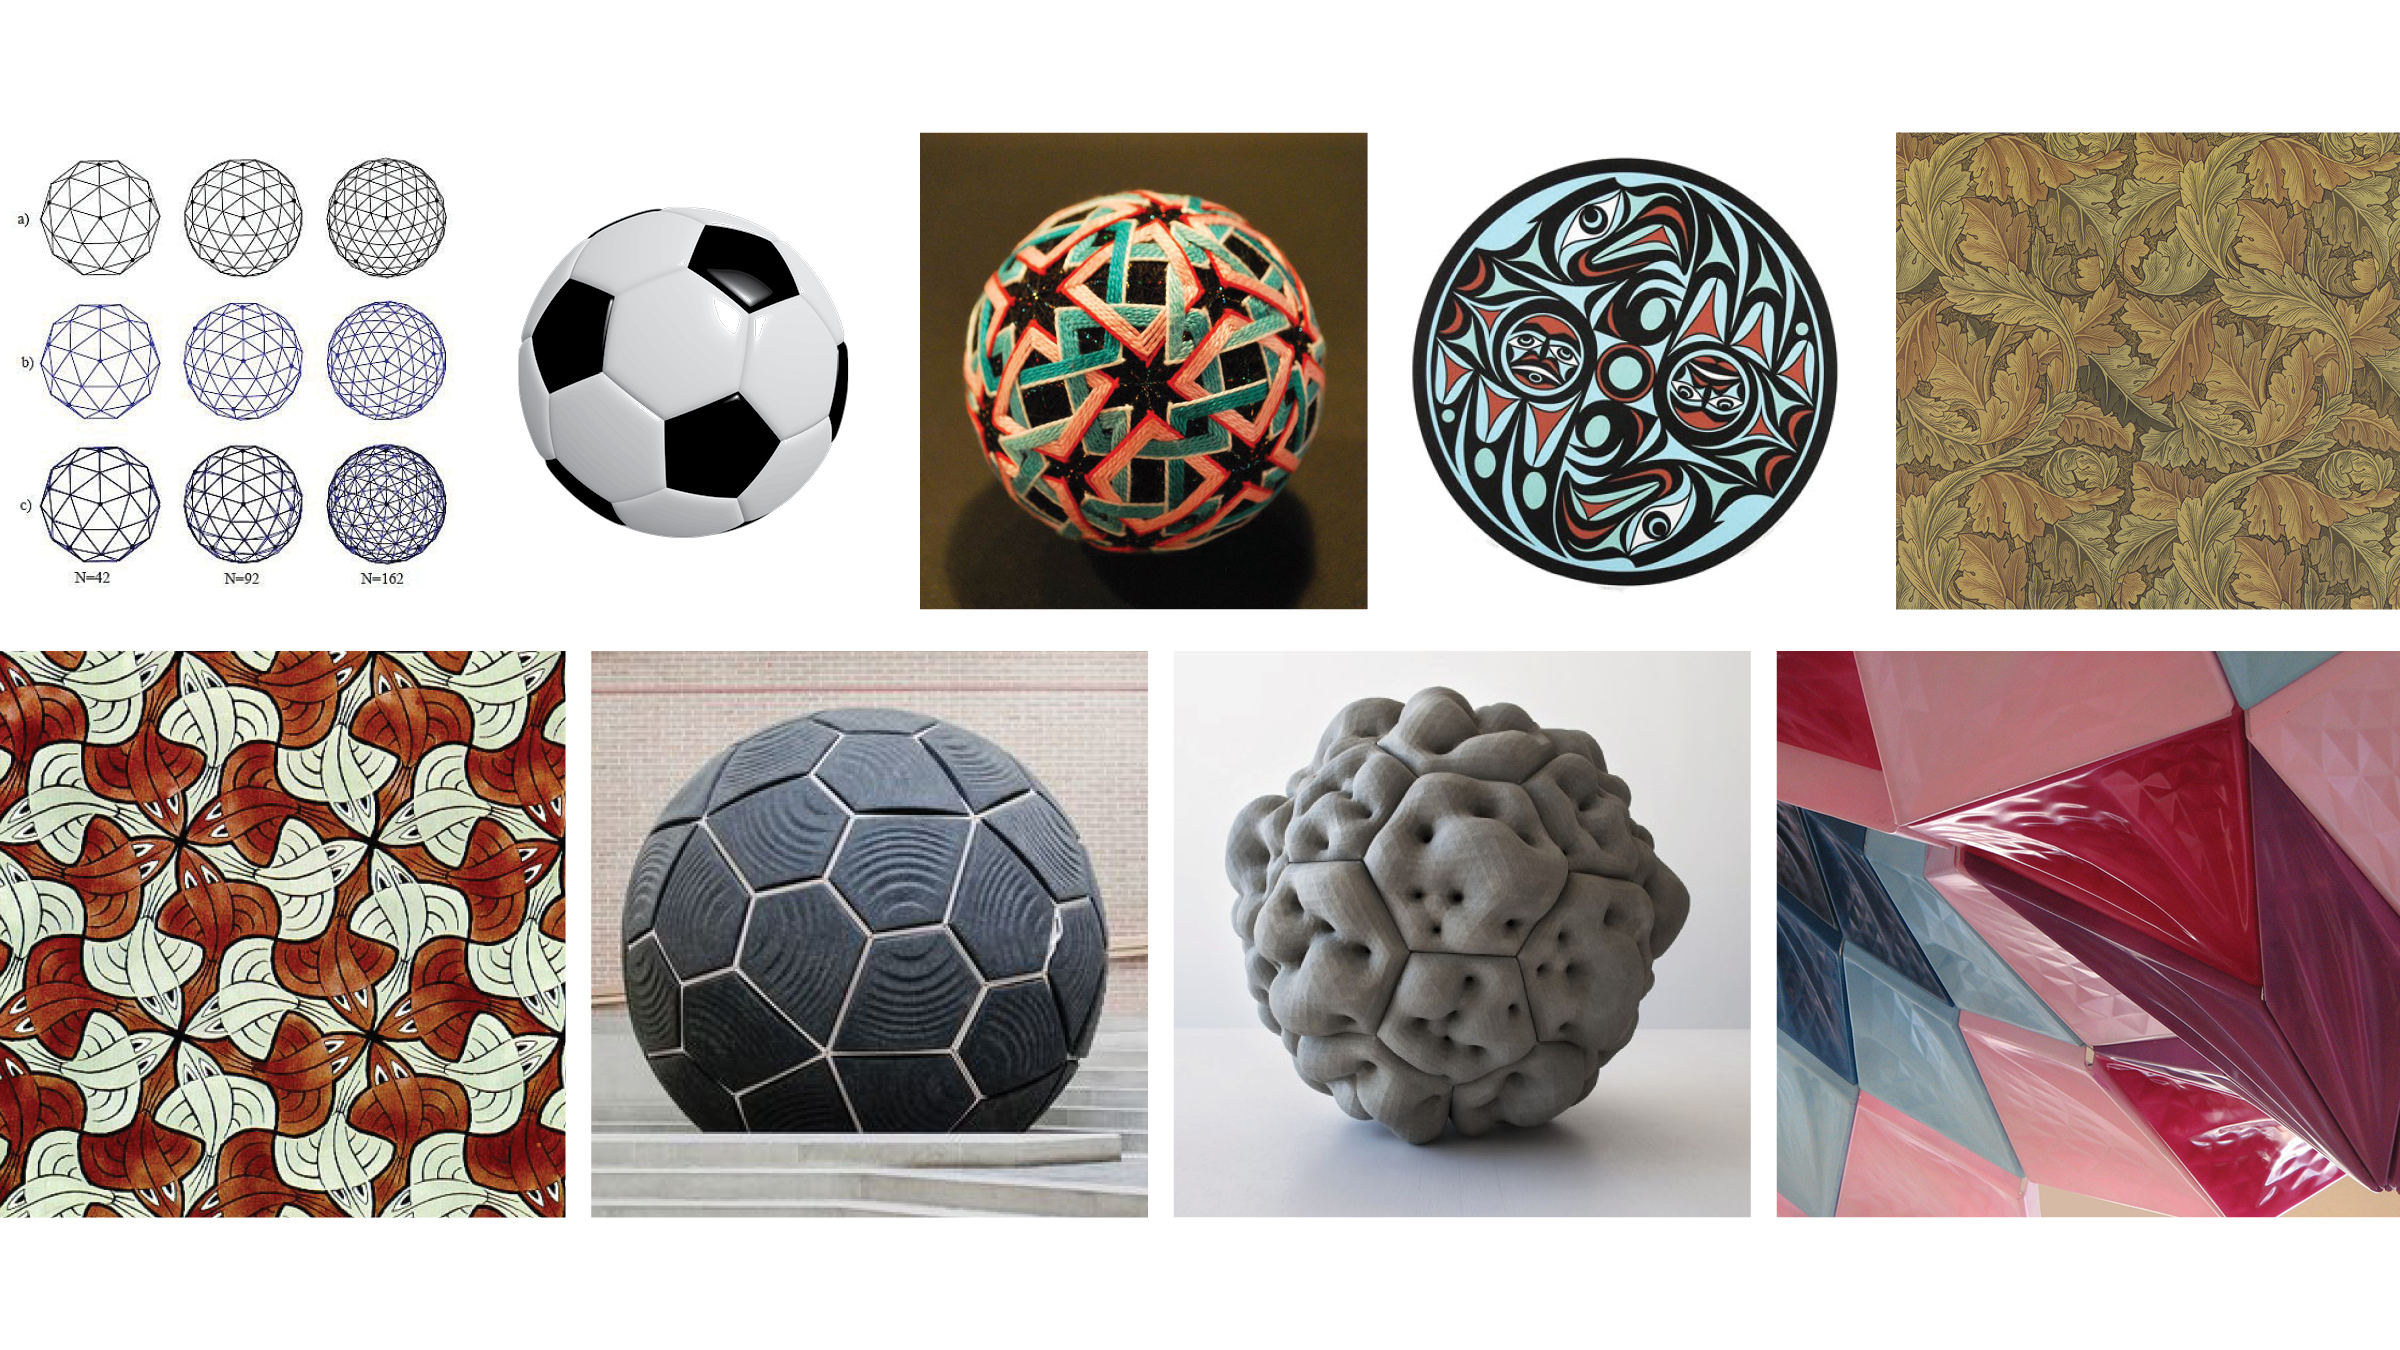 sphere with nested figures images5.jpg